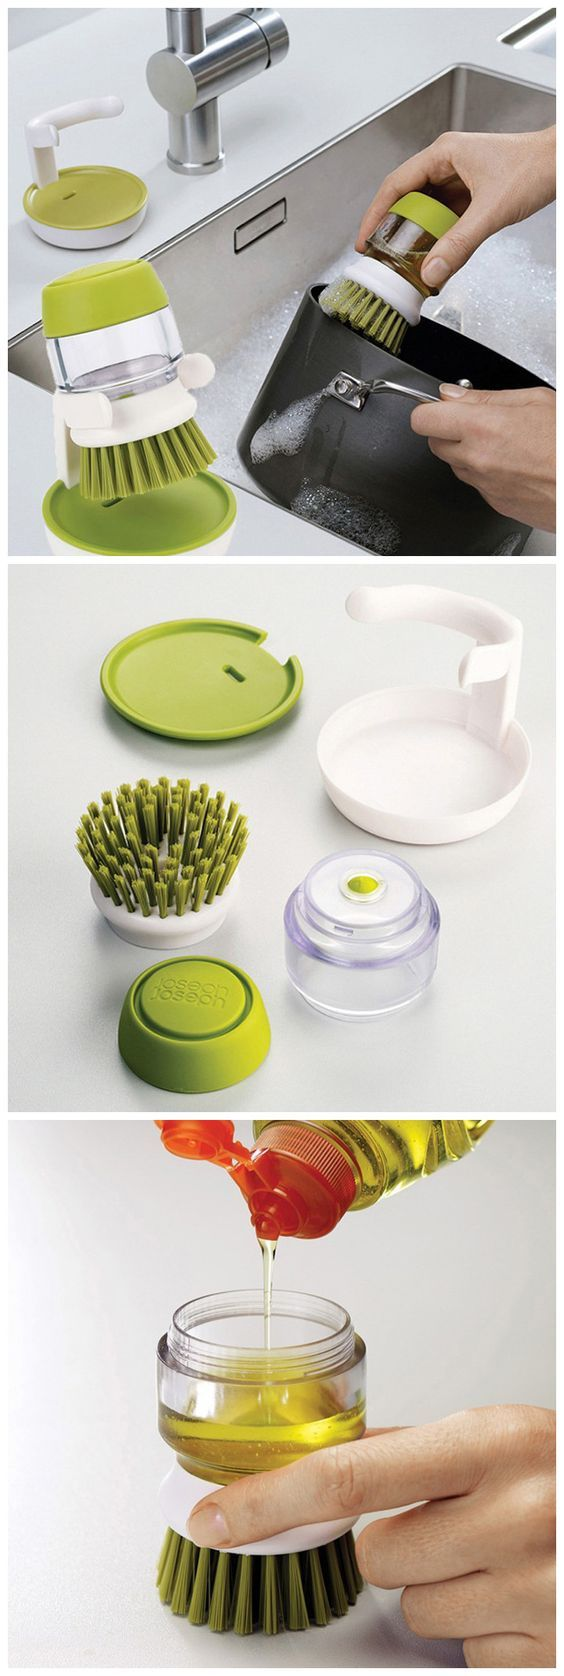 2 in 1 Cleaning Brush Small Detergent Can